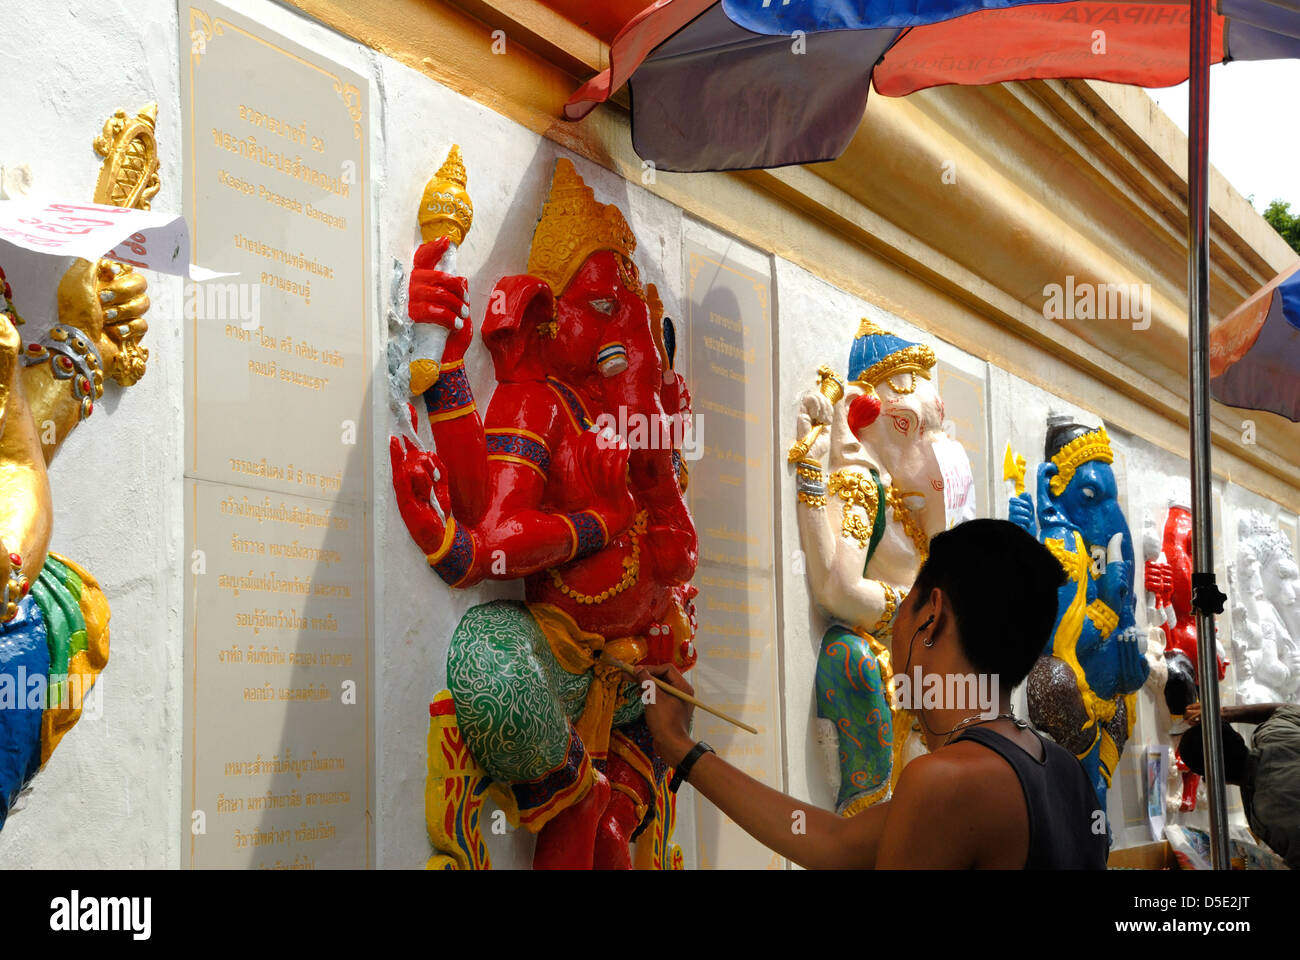 Artistes painting the Ganesh statues in Bangkok Thailand on 18/10/2012 - Stock Image